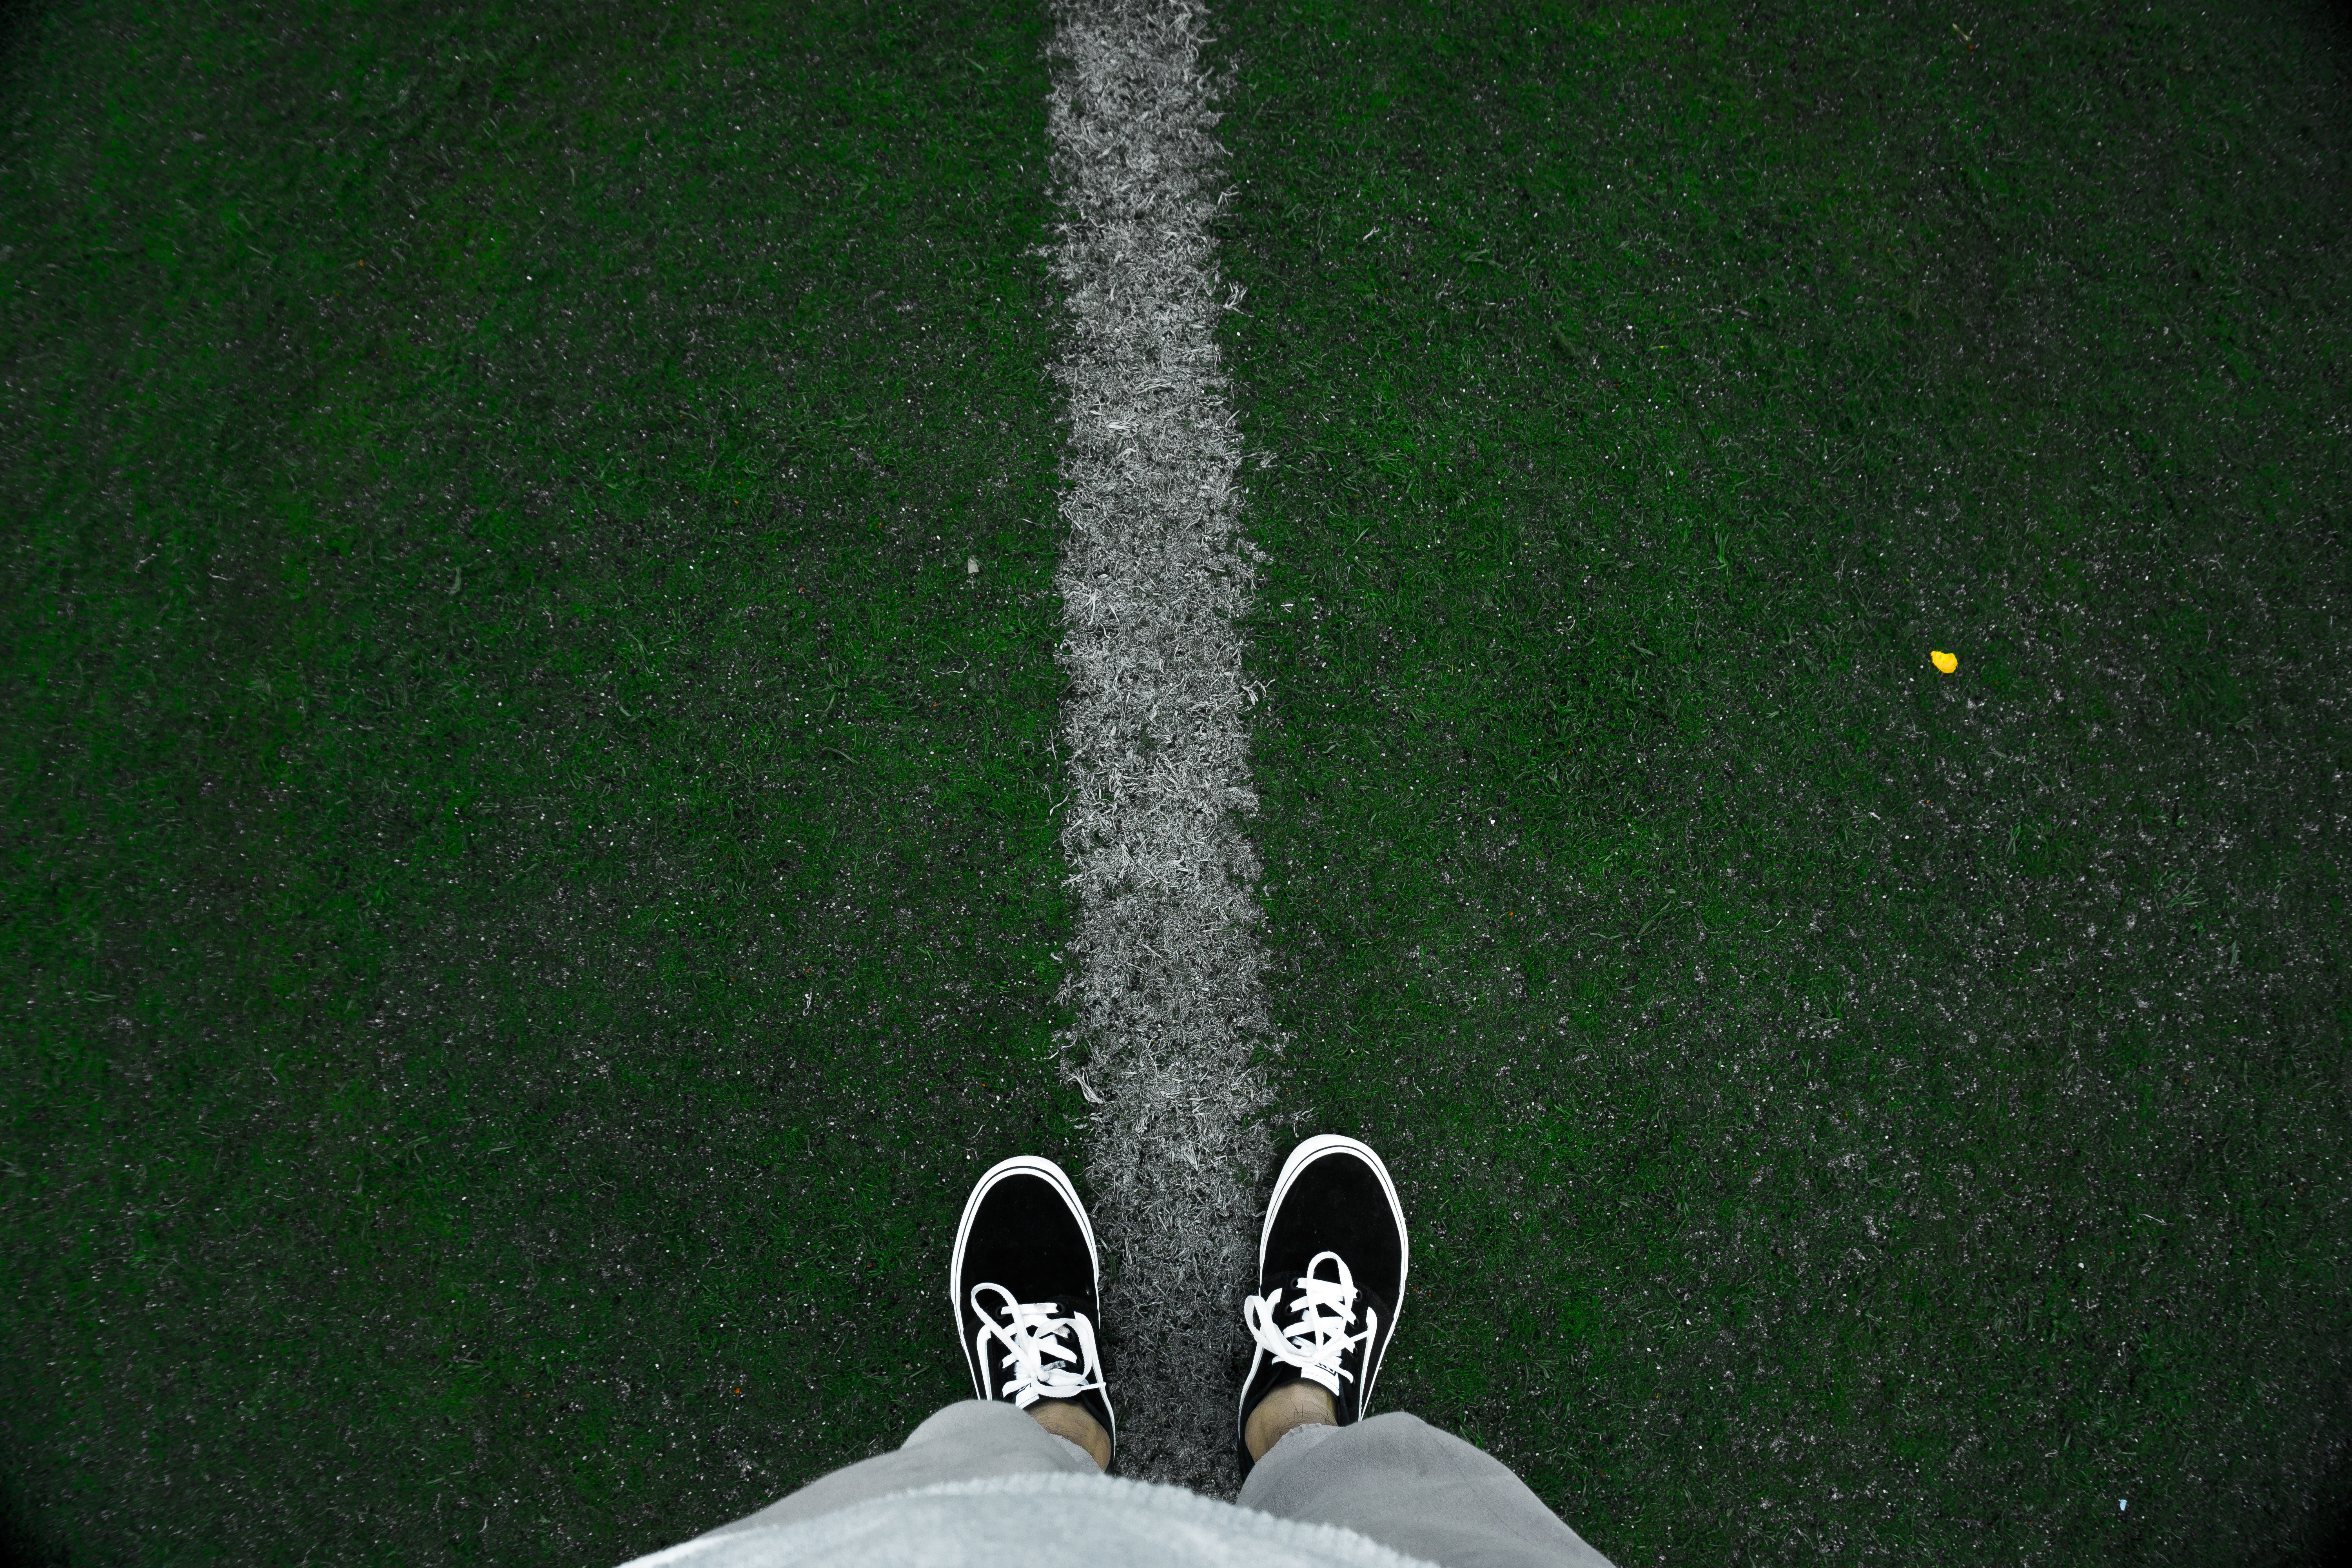 person wearing black low-top sneakers standing on green grass at daytime